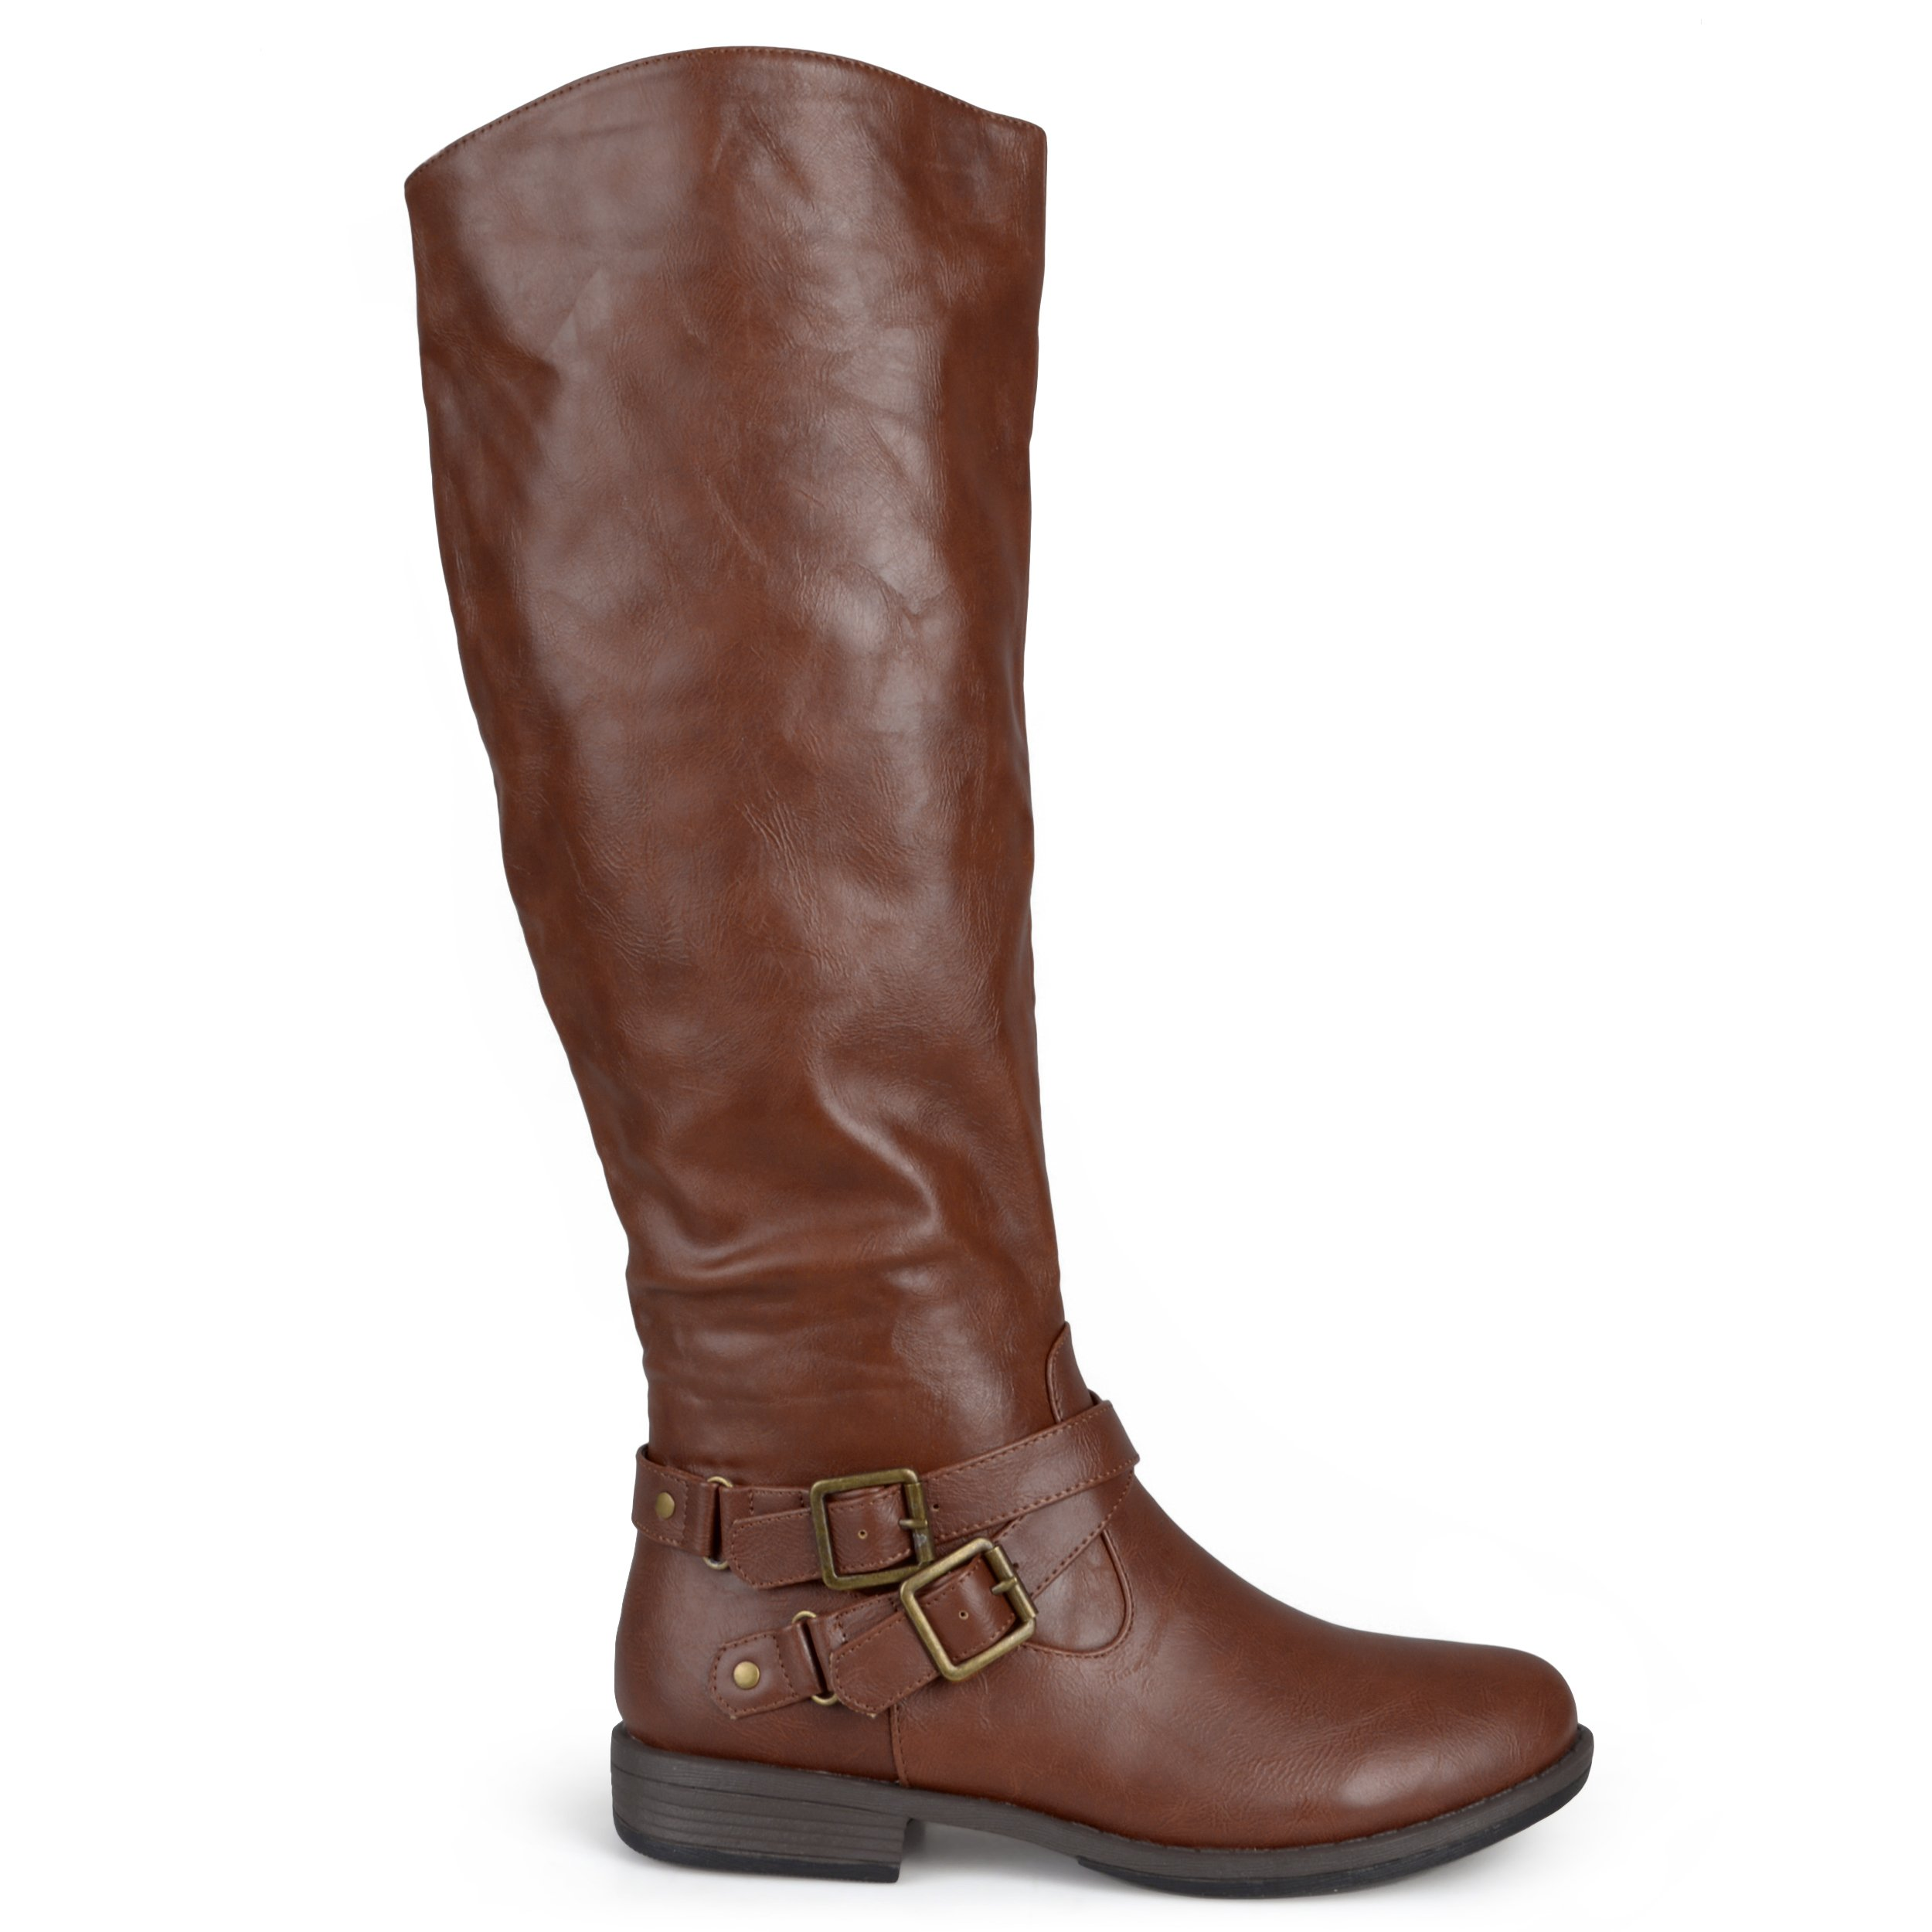 Brinley Co Women's Molly Knee High Boot, Brown, 8 Regular US